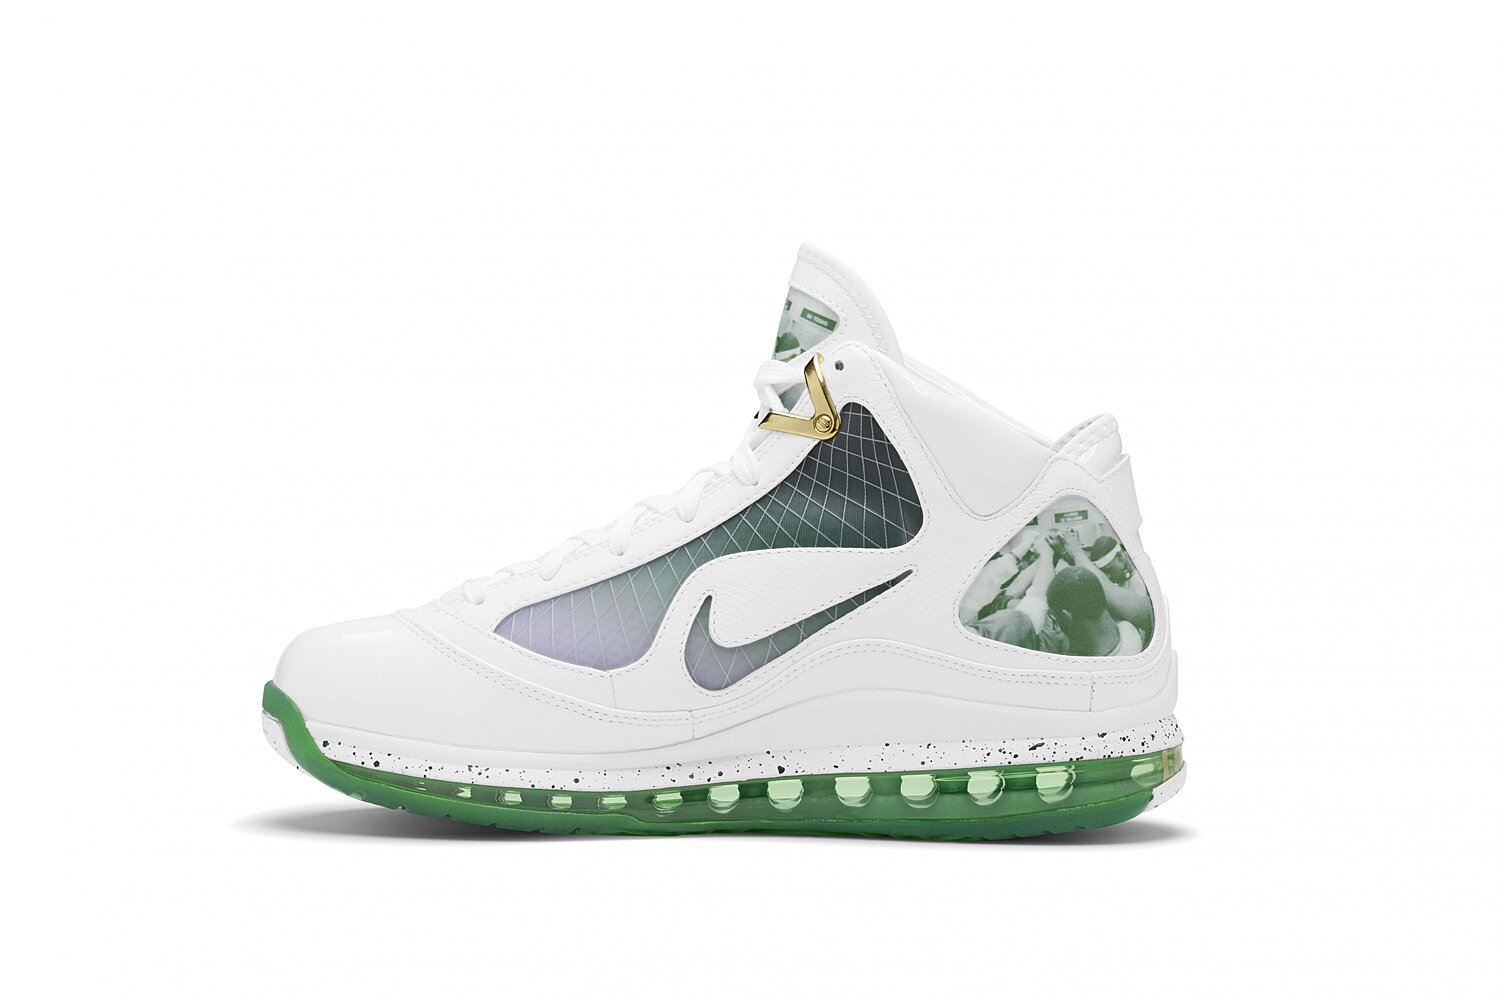 buy online 4d596 51cc5 LeBron James Signature Sneakers  Ranking the Best of the King   SI.com